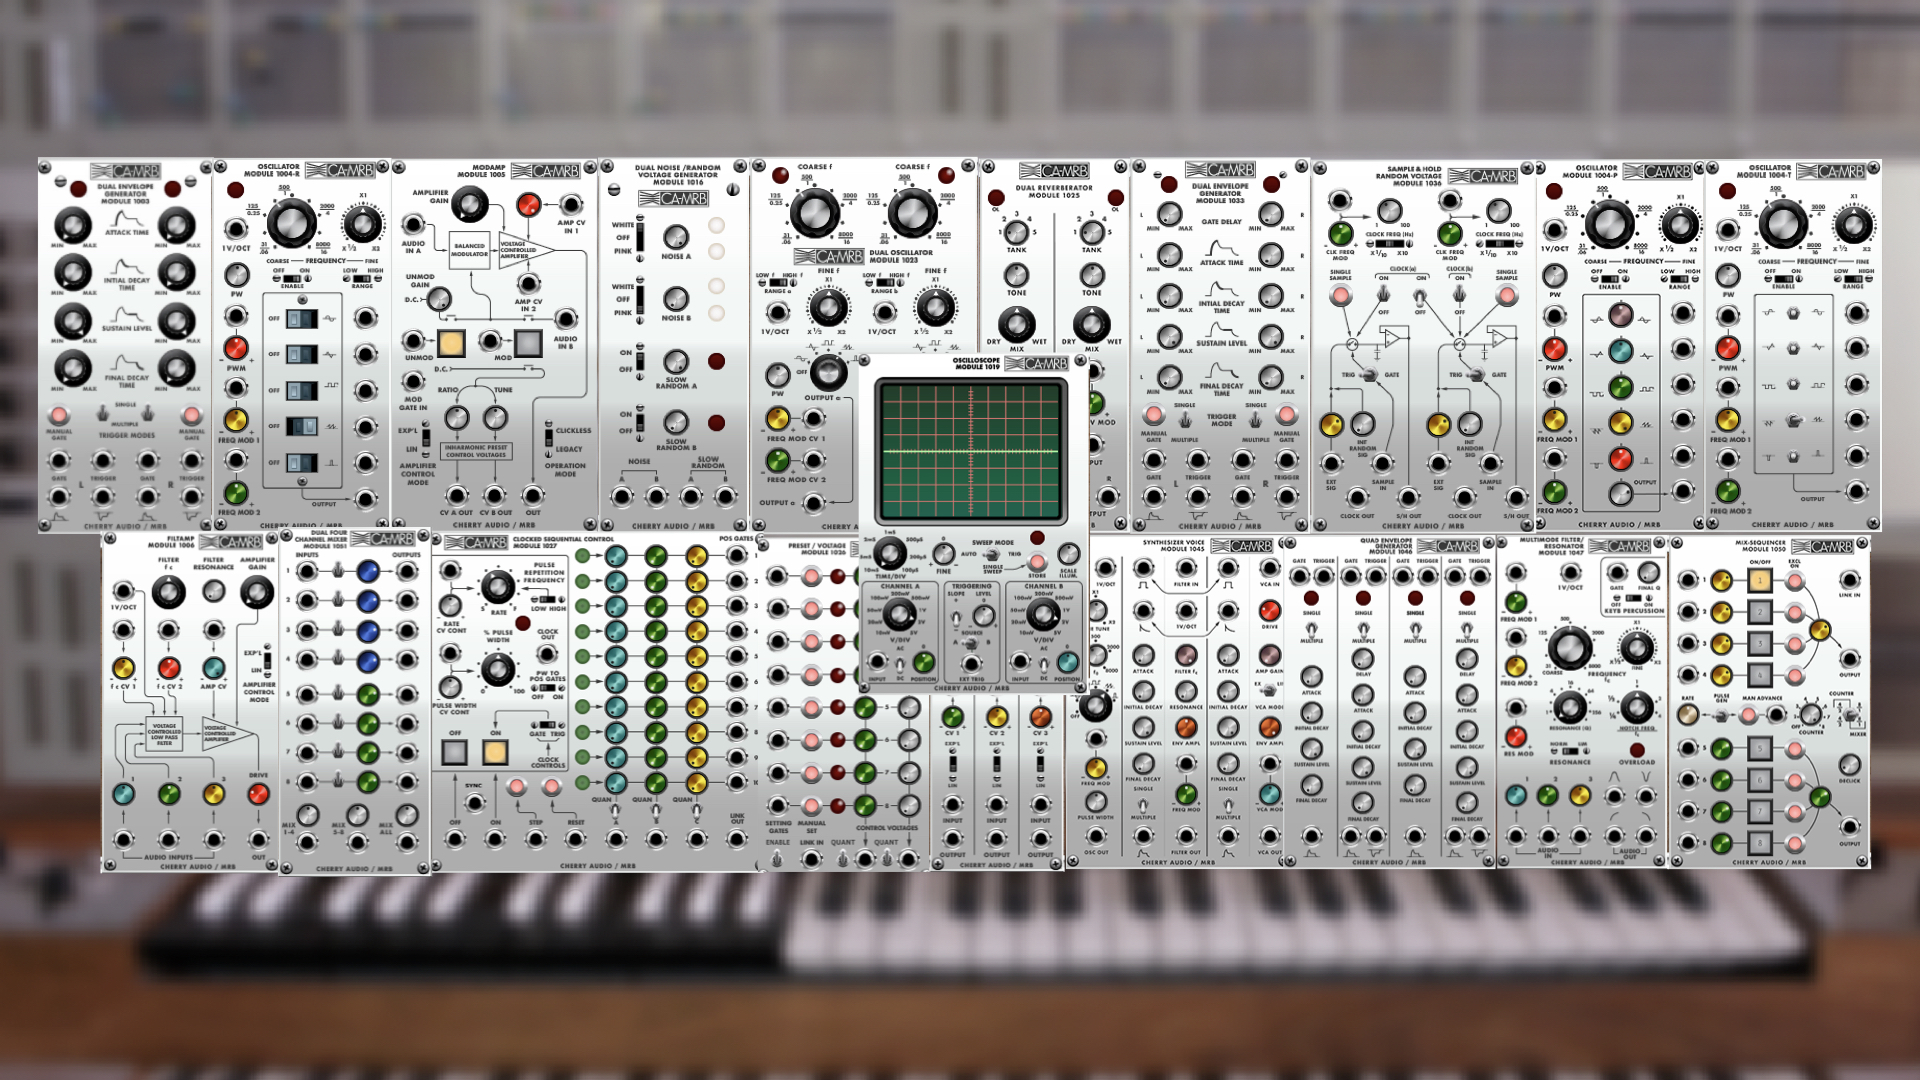 Cherry Audio VM2500 Collection, ARP 2500 Modules For Voltage Modular For $49